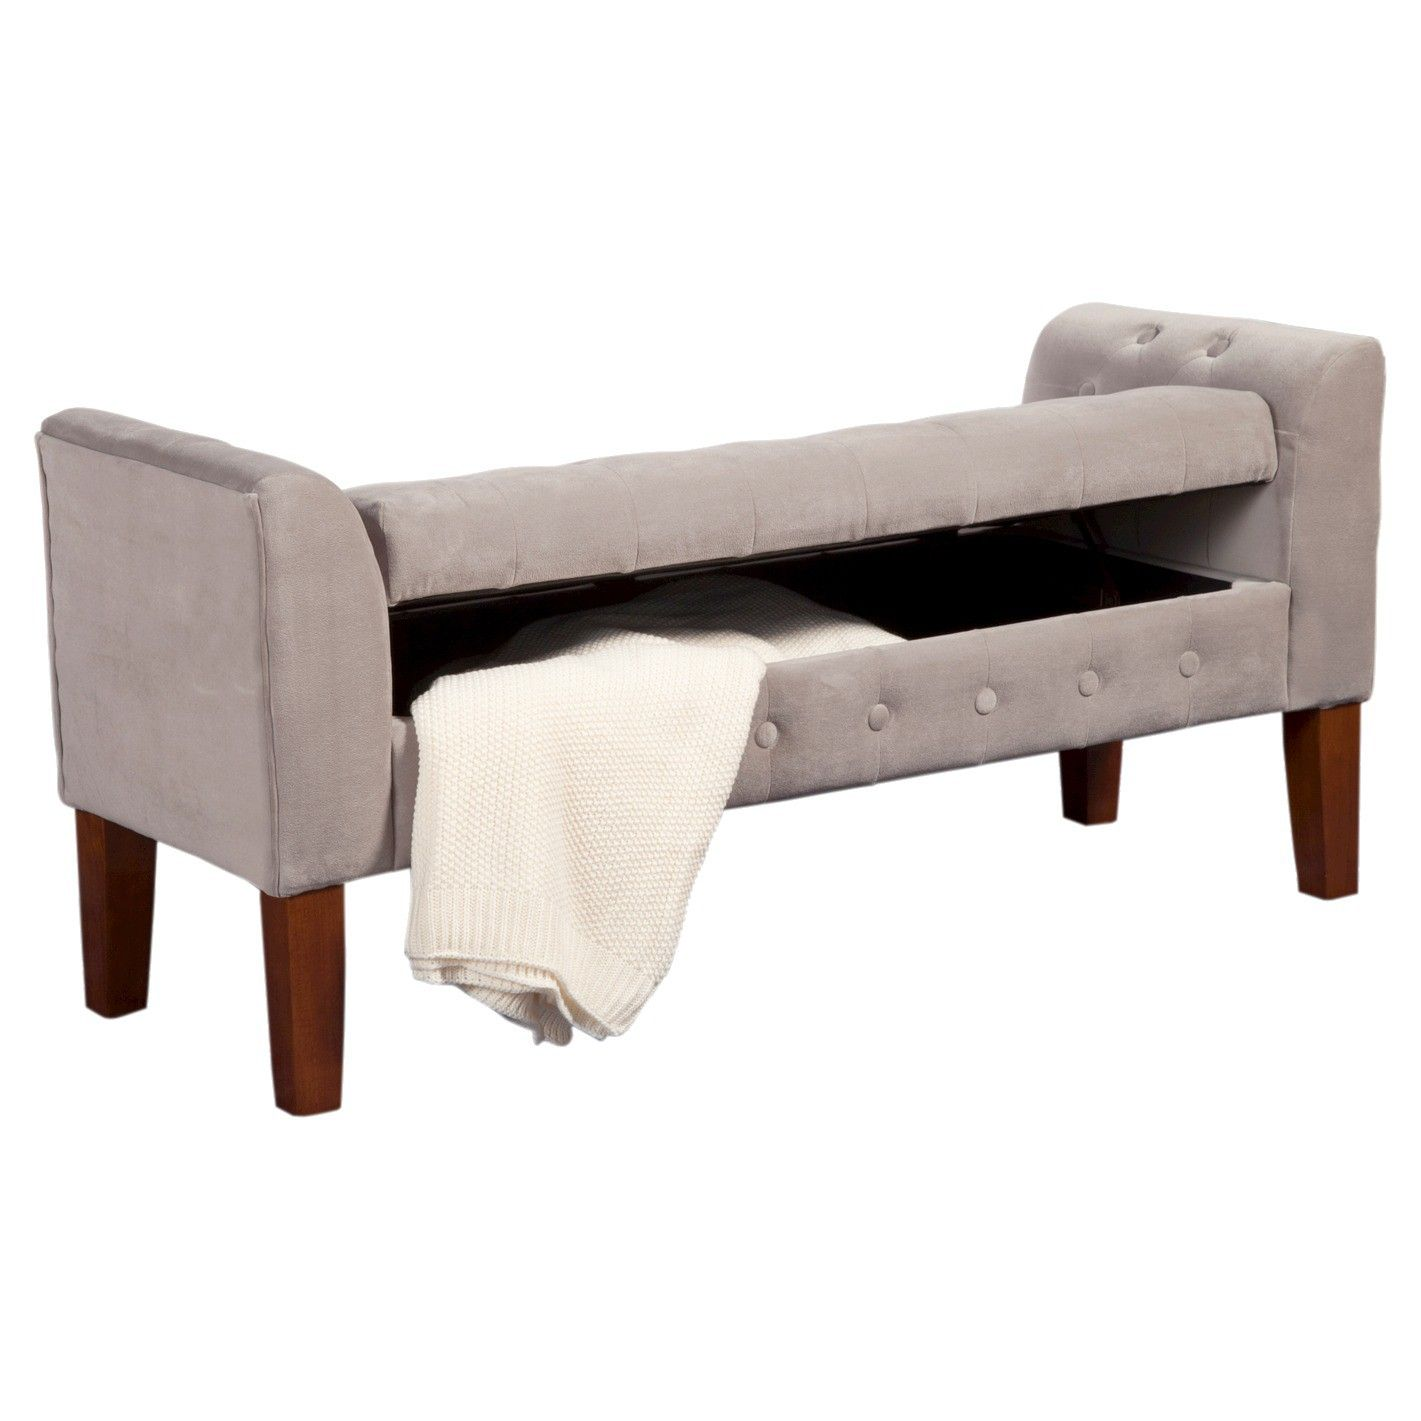 velvet tufted storage settee bench  bed storage storage benches  - end of bed storage bench  grey  target